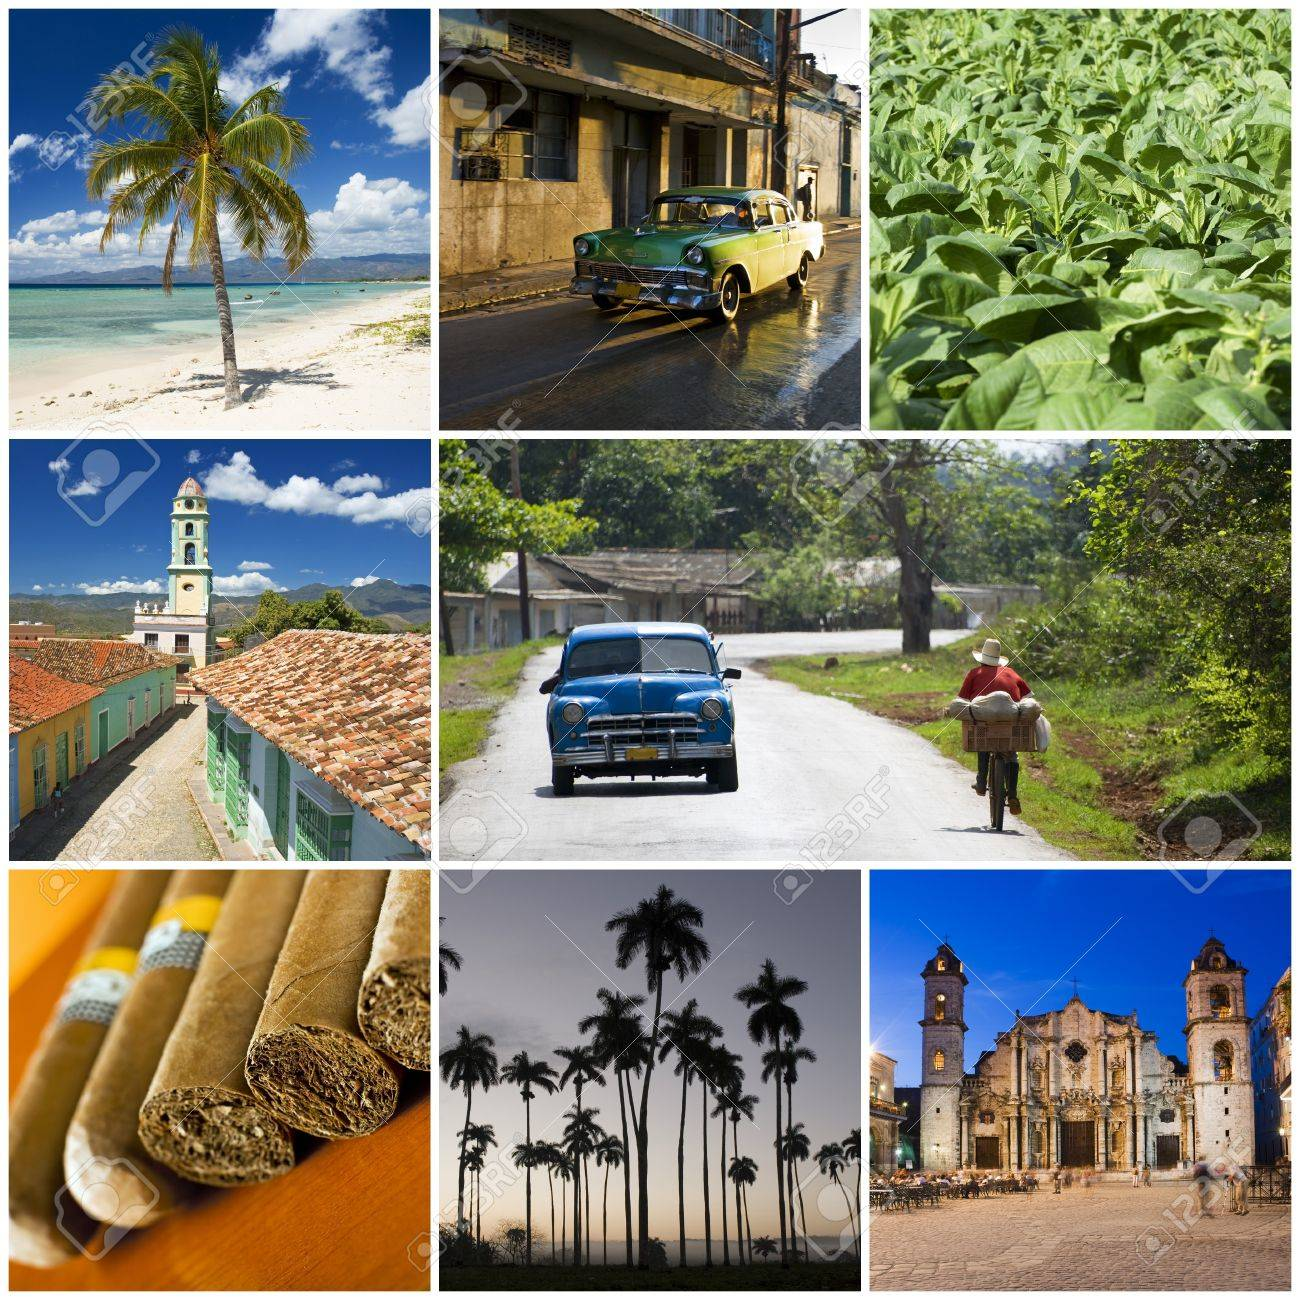 Collage Bilder Beautiful Cuban Collage Made From Eight Photographs Stock Photo, Picture And Royalty Free Image. Image 4260945.